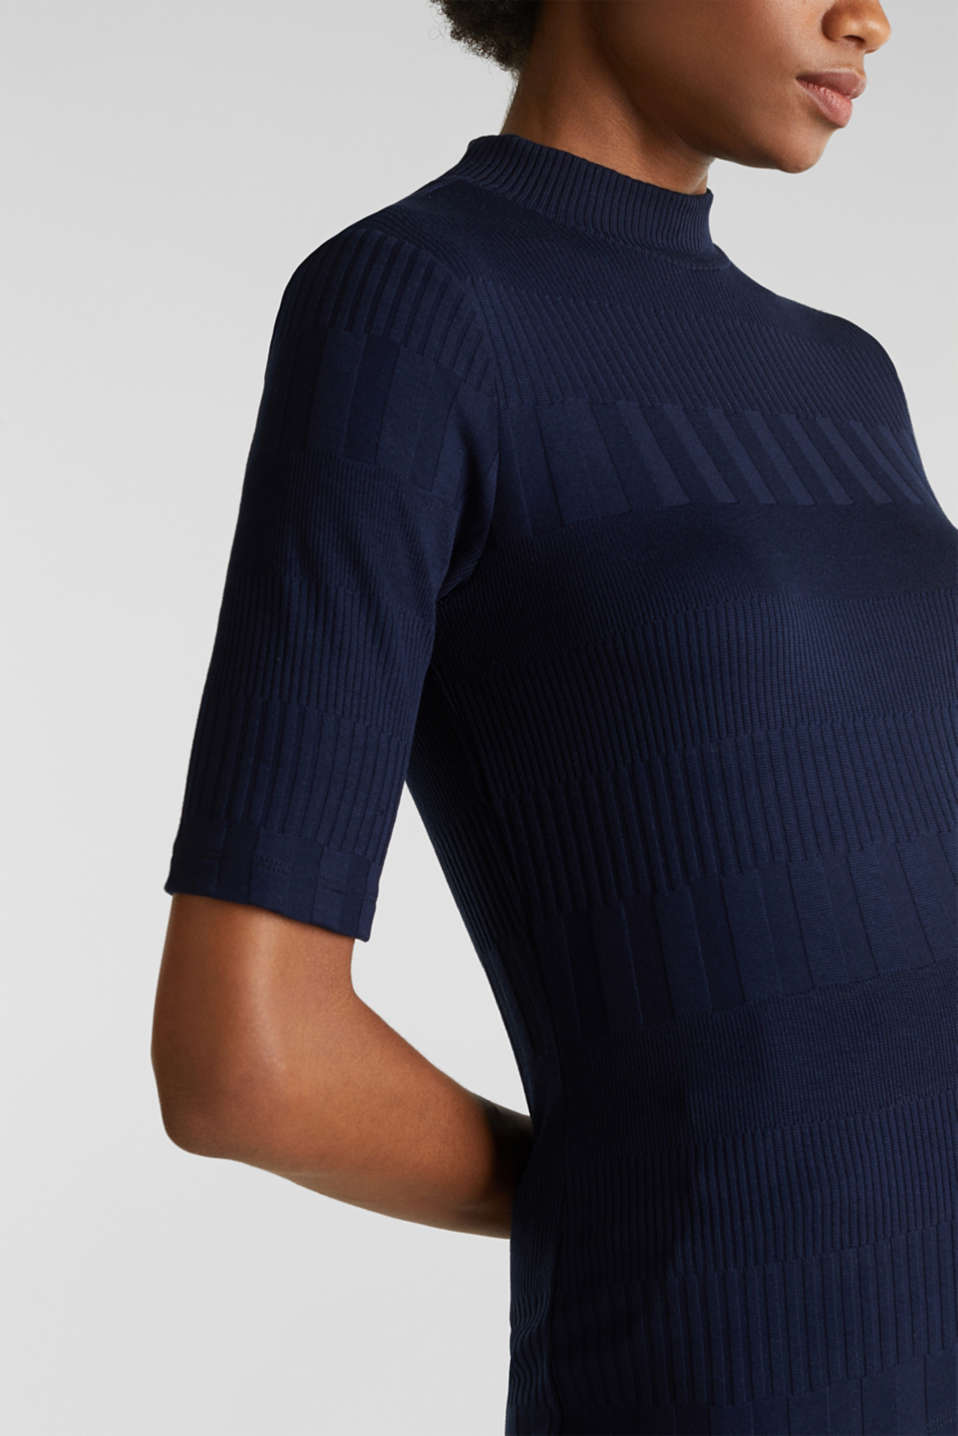 Textured top with a band collar, NAVY, detail image number 2